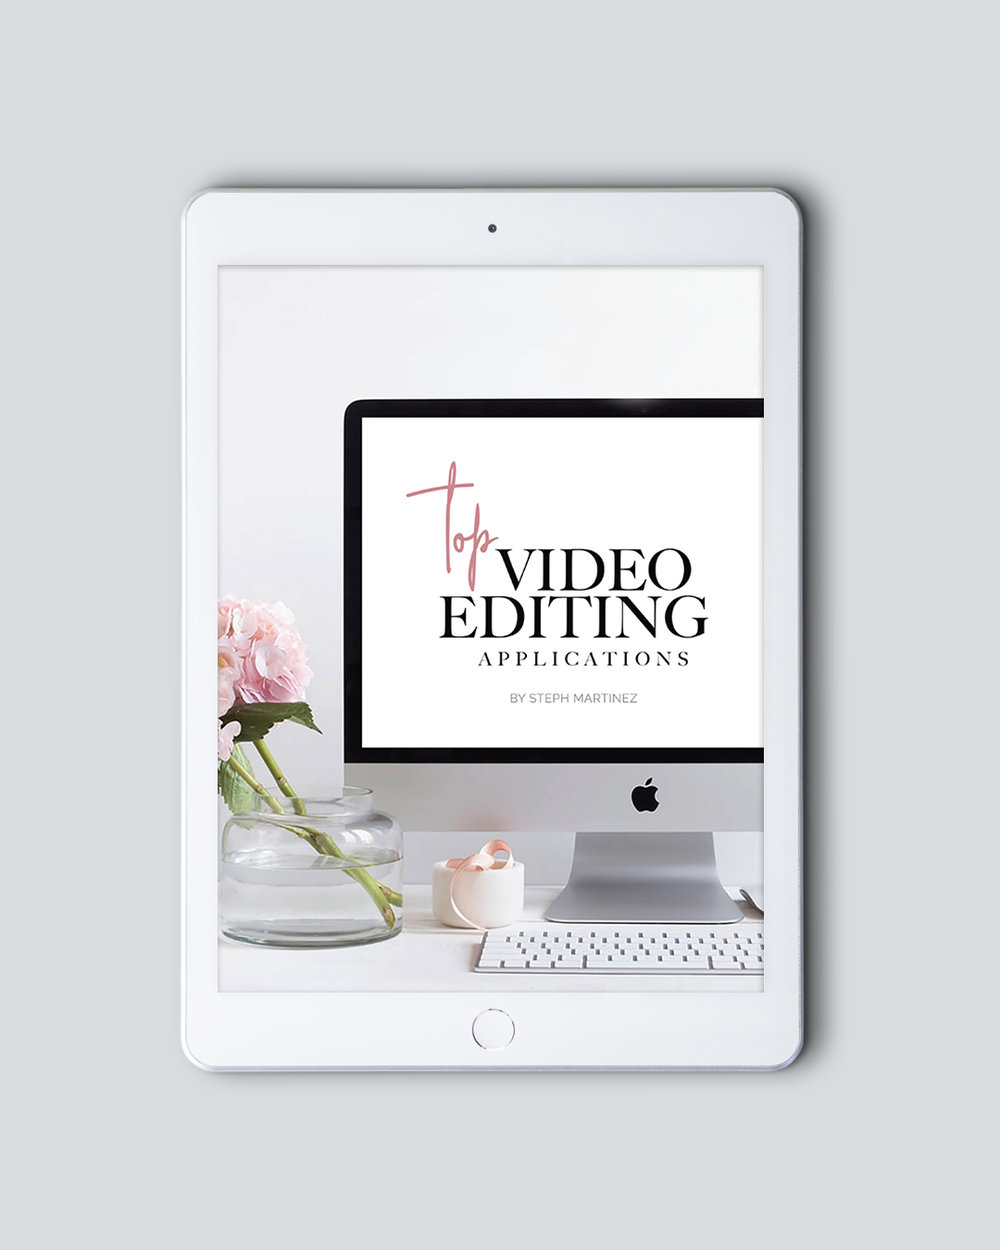 Top video editing applications